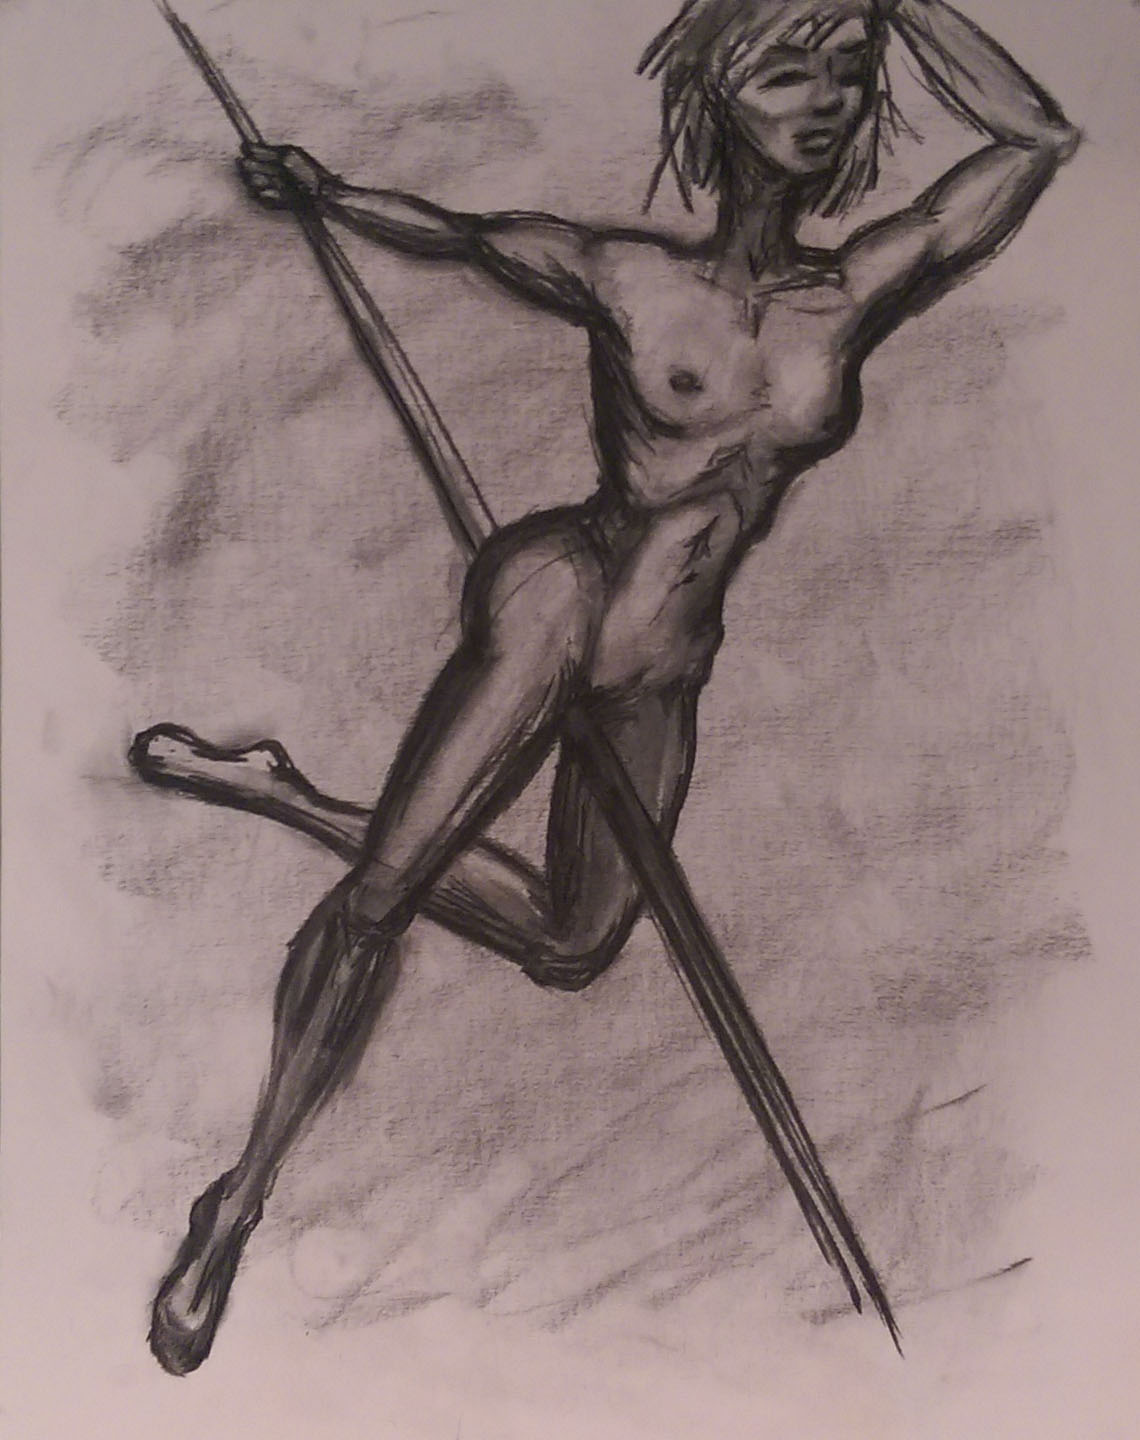 Pole Dancer - Sketch